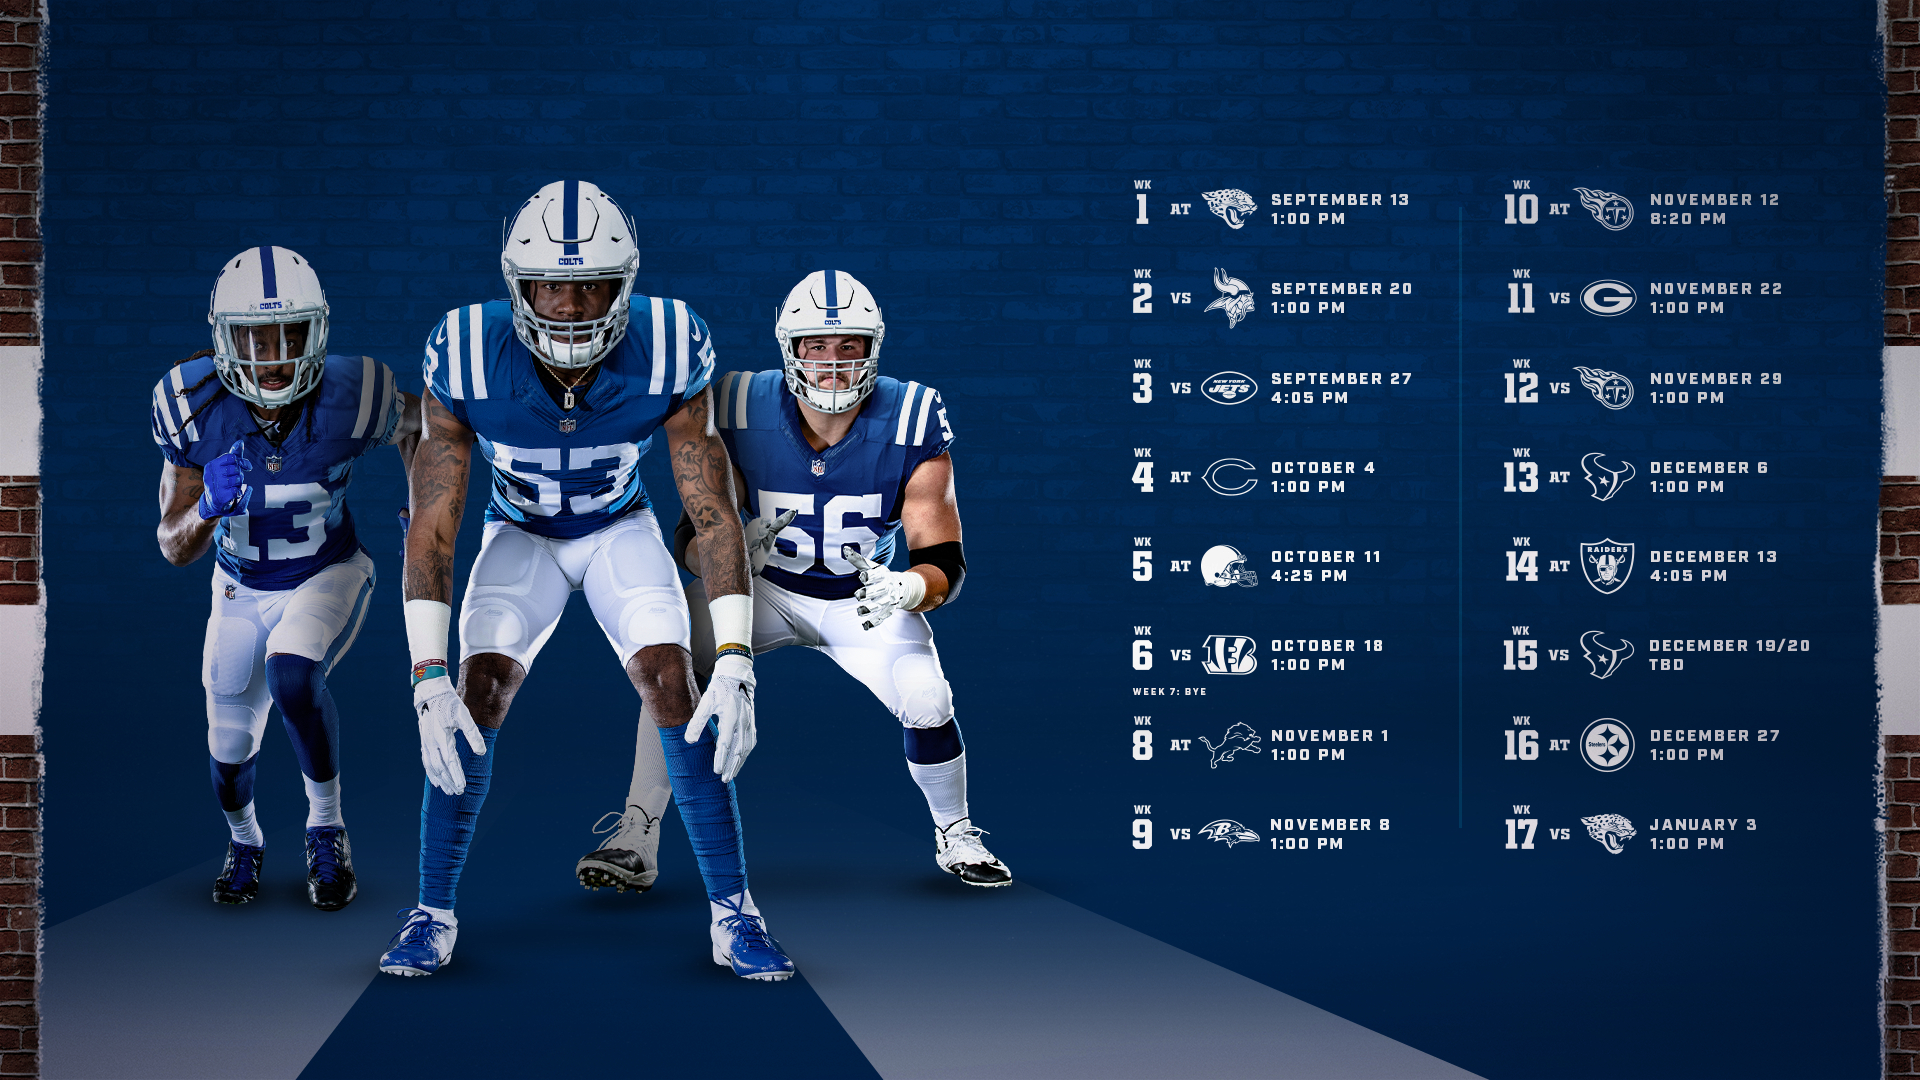 Colts Schedule | Indianapolis Colts - Colts